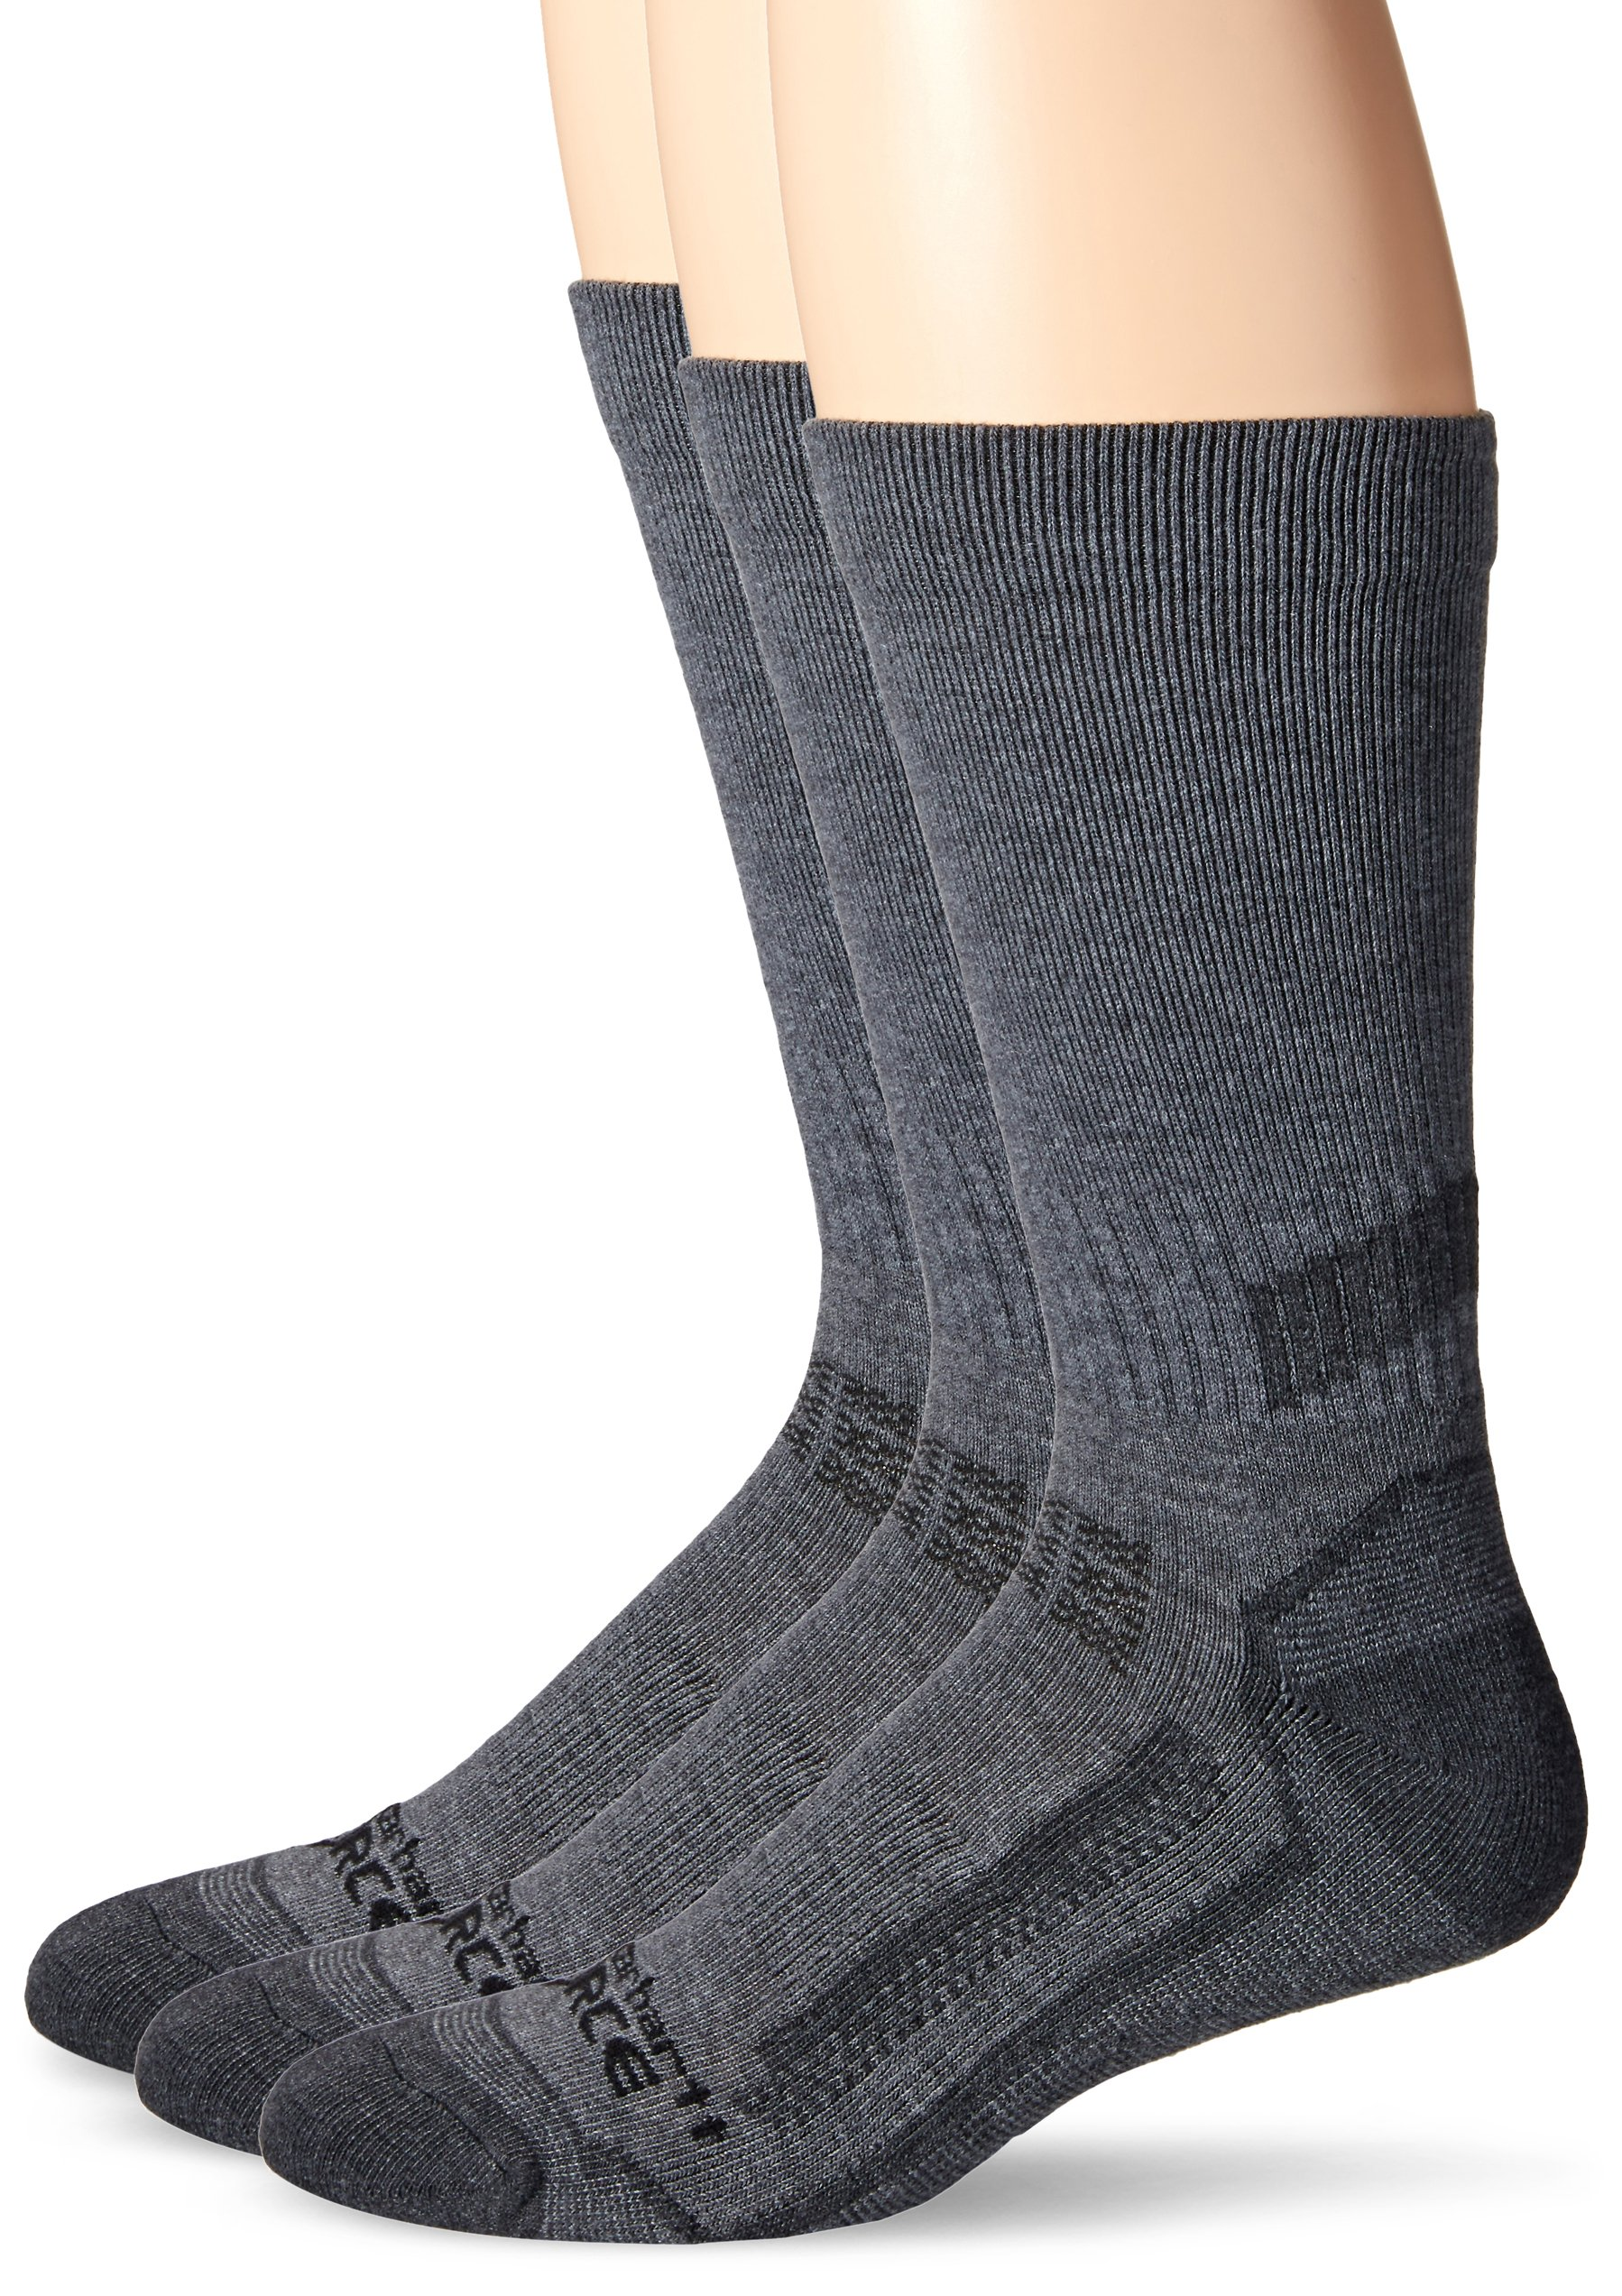 Carhartt Men's 3 Pack Force Performance Work Crew, Charcoal Heather, Sock Size:10-13/Shoe Size: 6-12